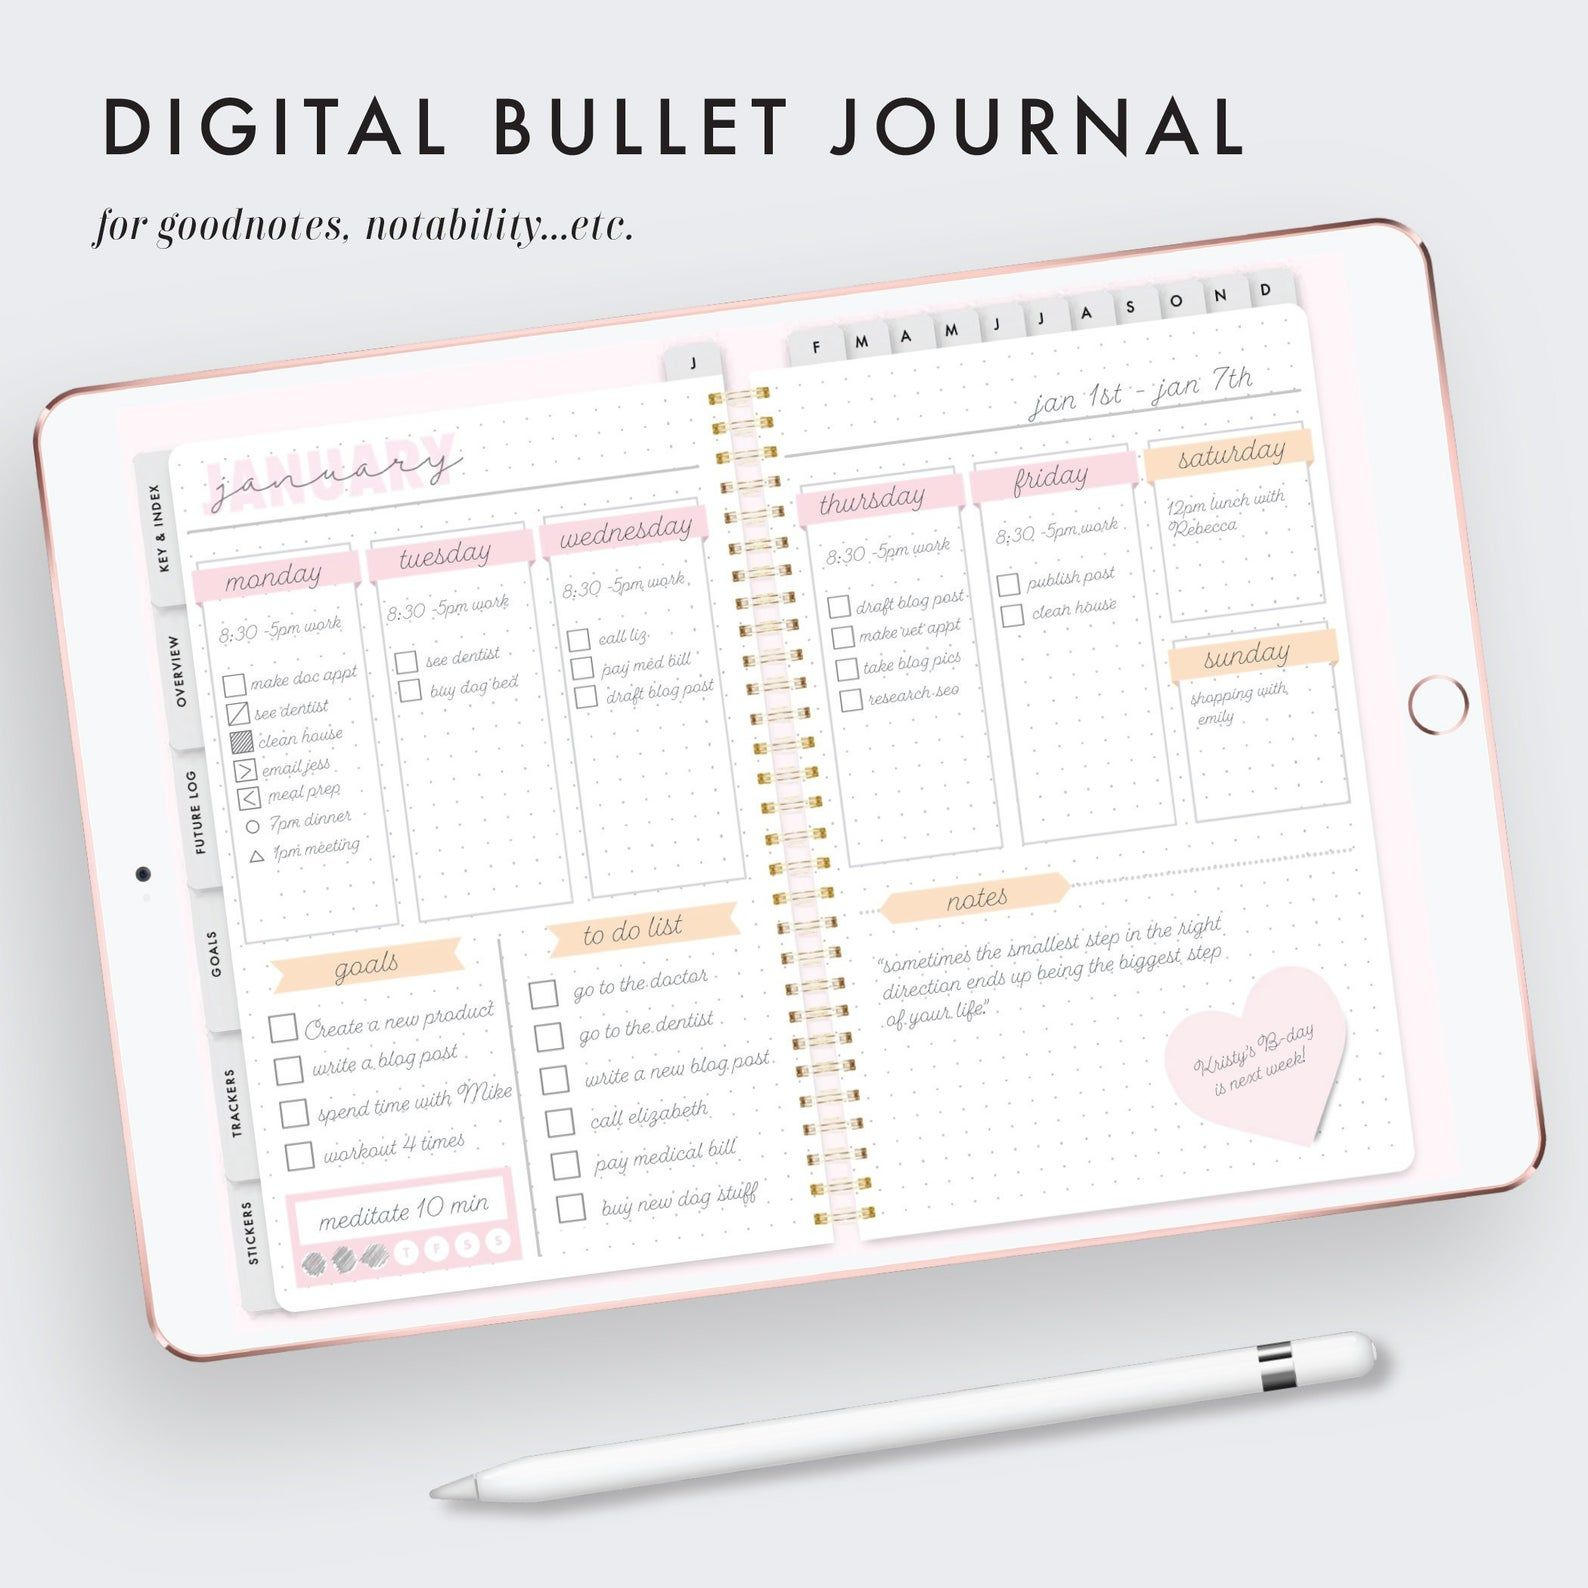 digital bullet journal, goodnotes template, goodnotes, digibujo, notability, digital agenda, digital stickers, goodnotes stickers, bujo